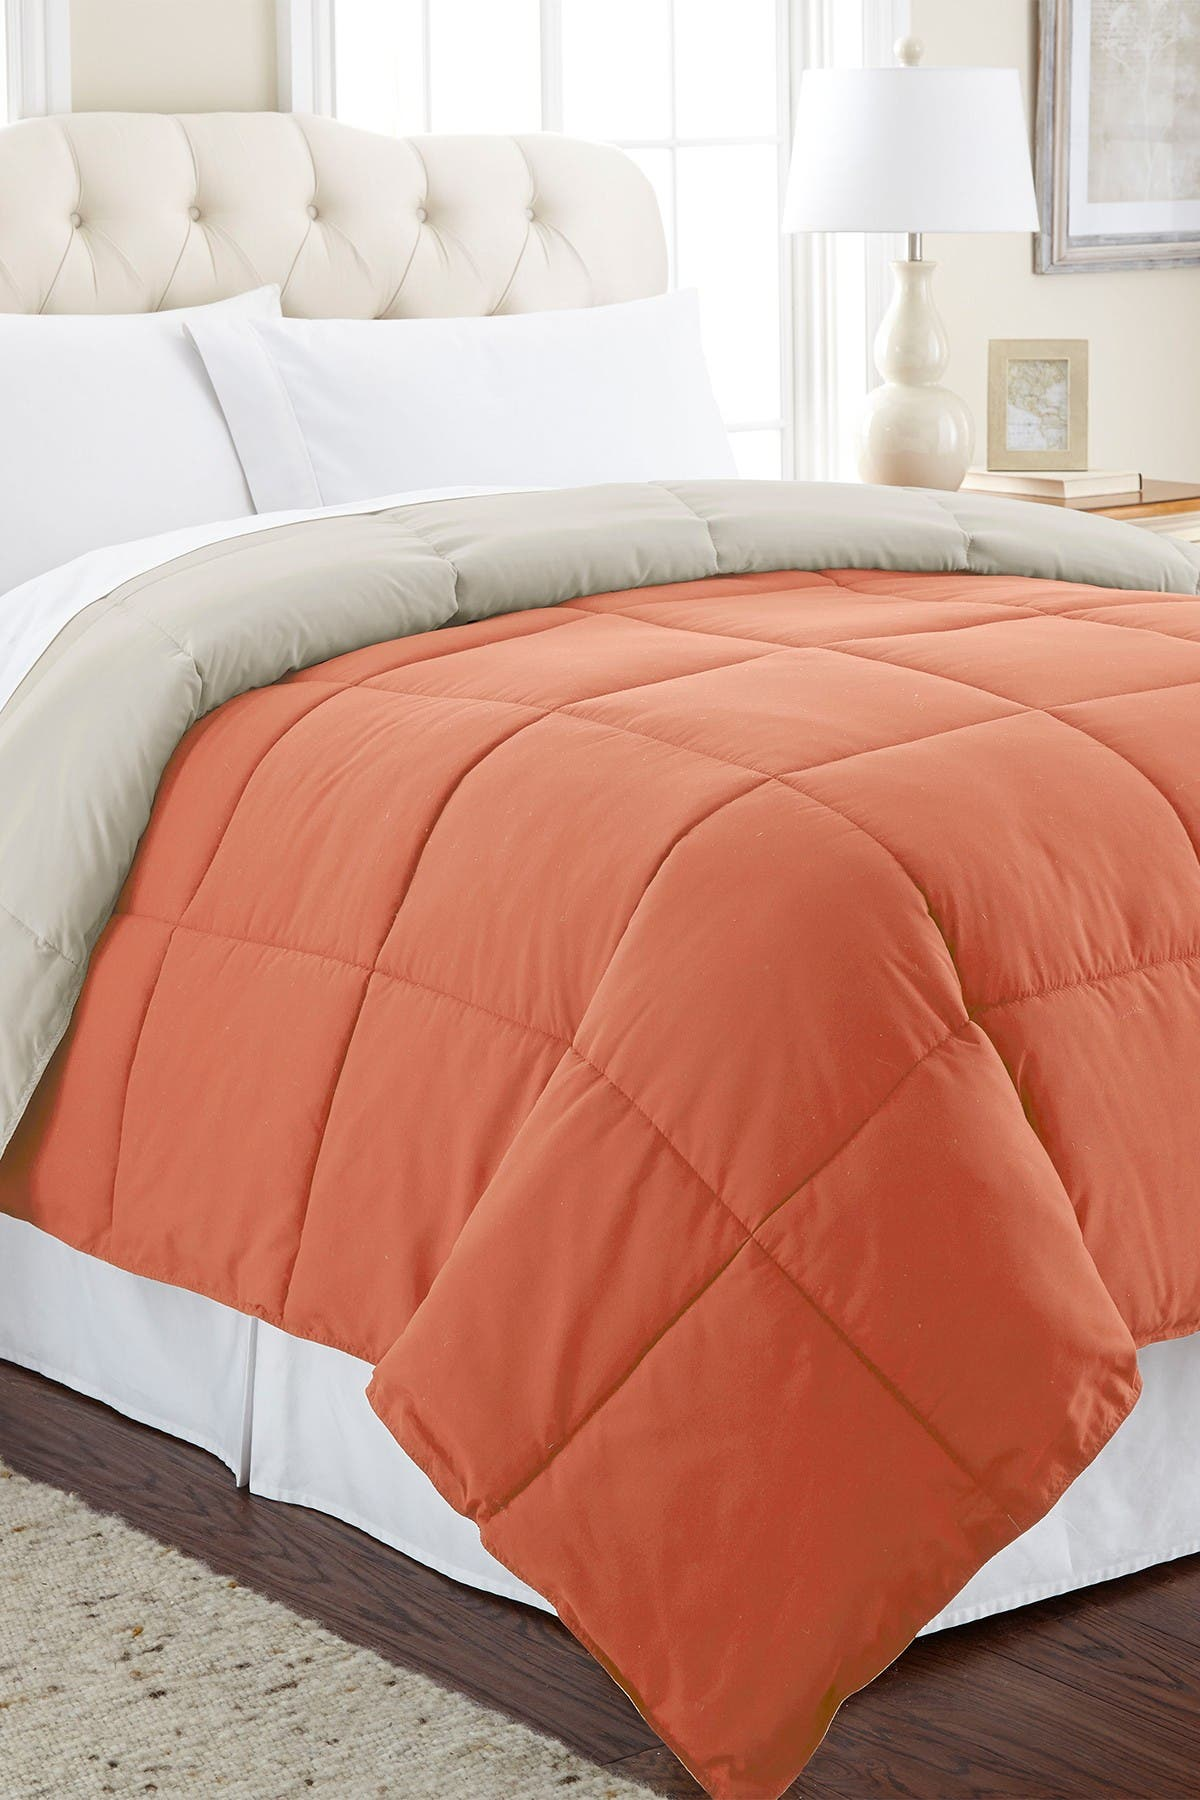 Image of Modern Threads Down Alternative Reversible Queen Comforter - Orange Rust/Oatmeal